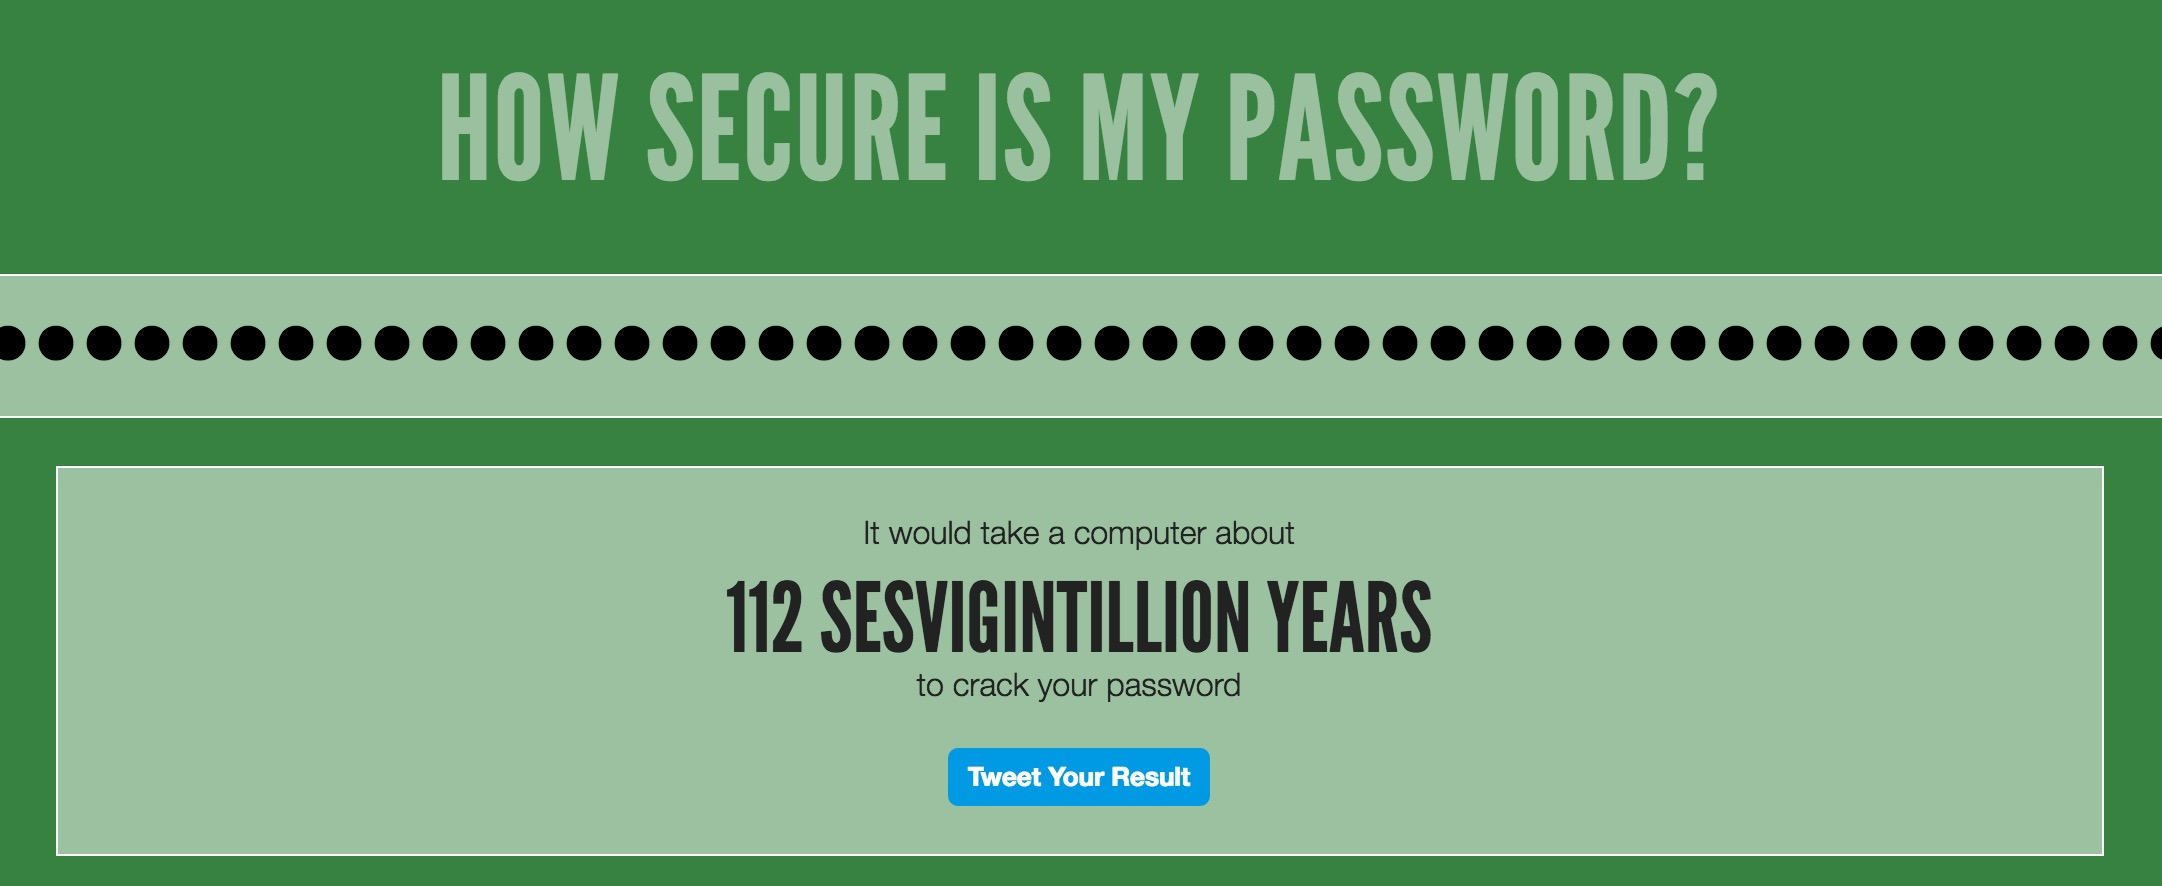 Use a URL as a Strong Password? #CrazyTalk